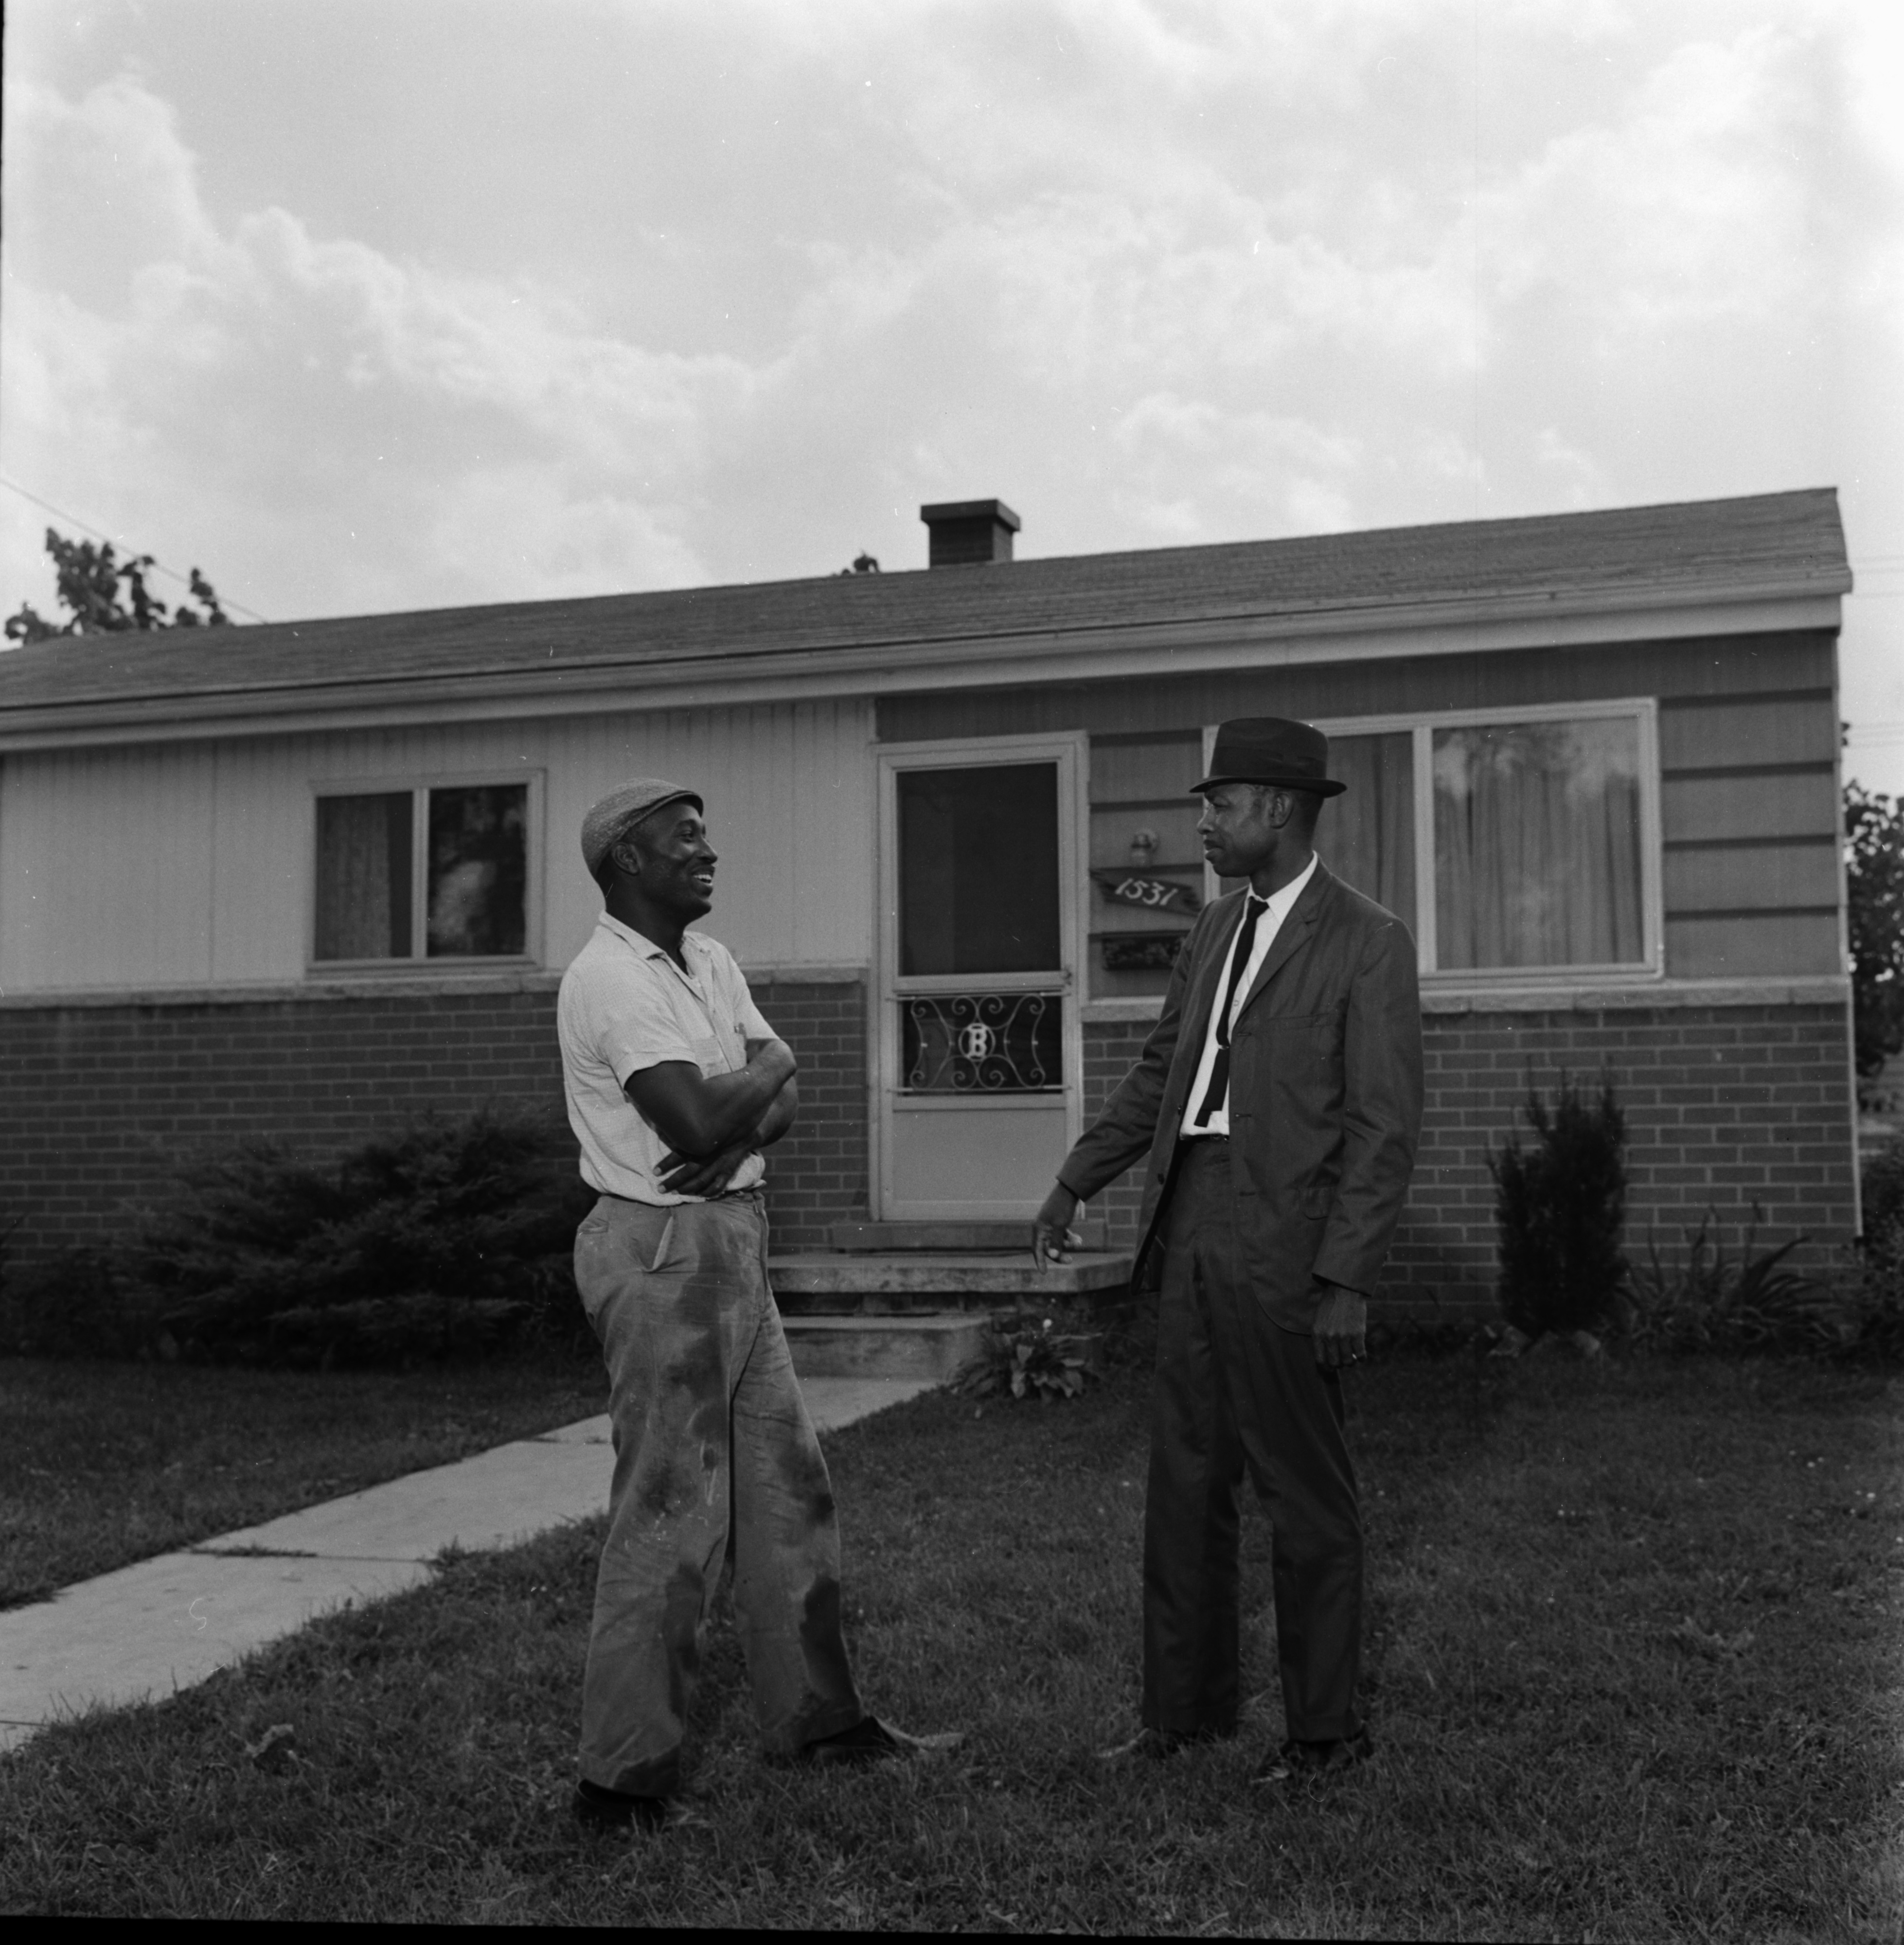 Elray Lipsey and Pastor Elder L. Edwards Inspect House owned by Christ Temple Apostolic Faith Church of Ypsilanti, August 1965 image